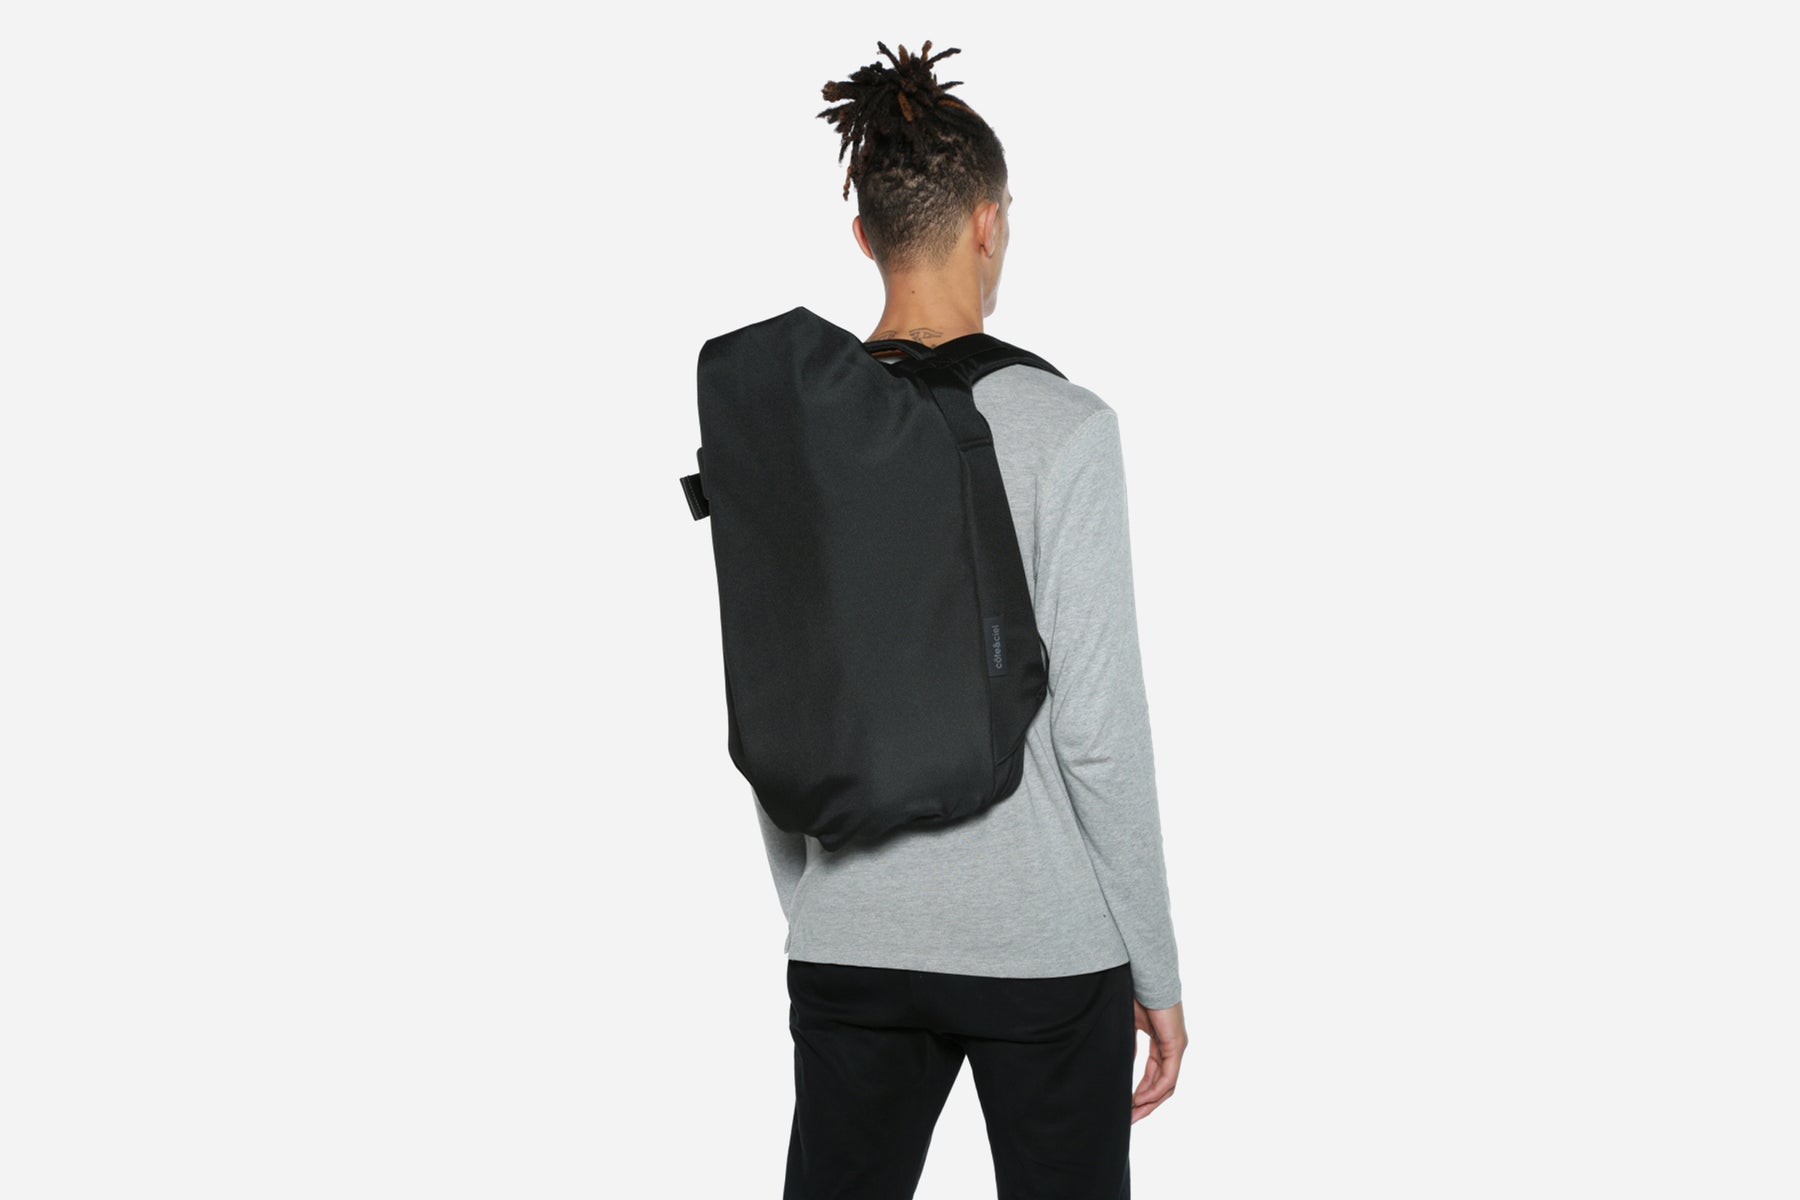 The Cote&Ciel Isar Rucksack, Form & Function Meet